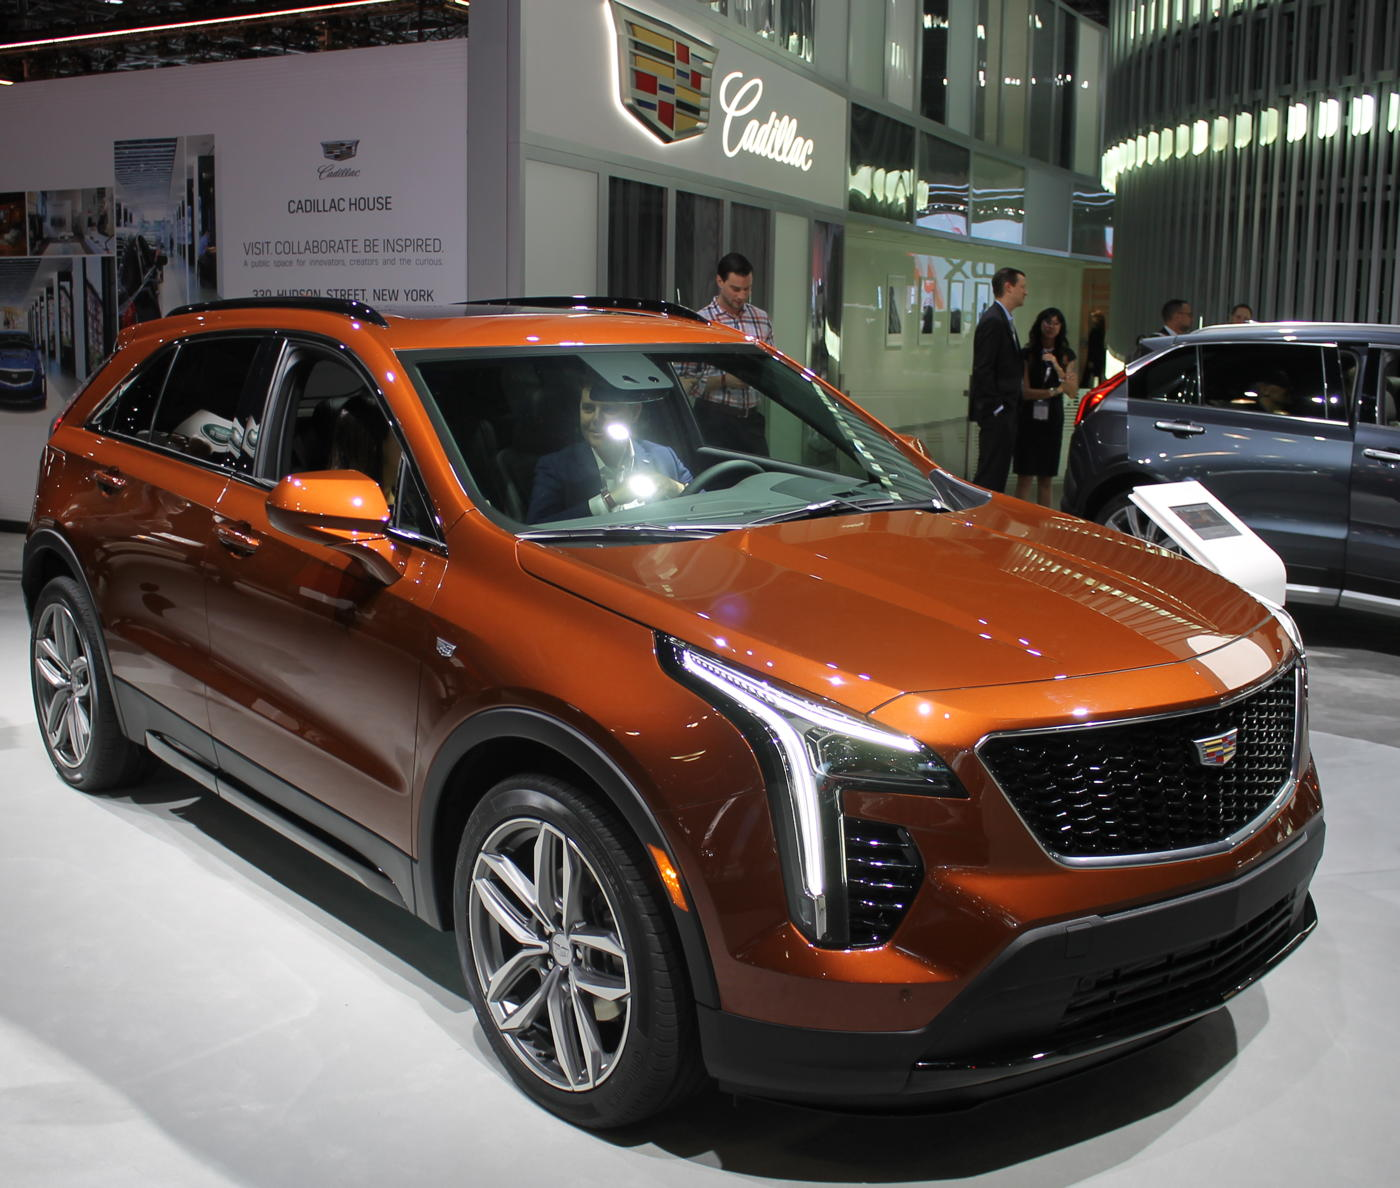 2019 Cadillac XT4 at 2018 NYAS